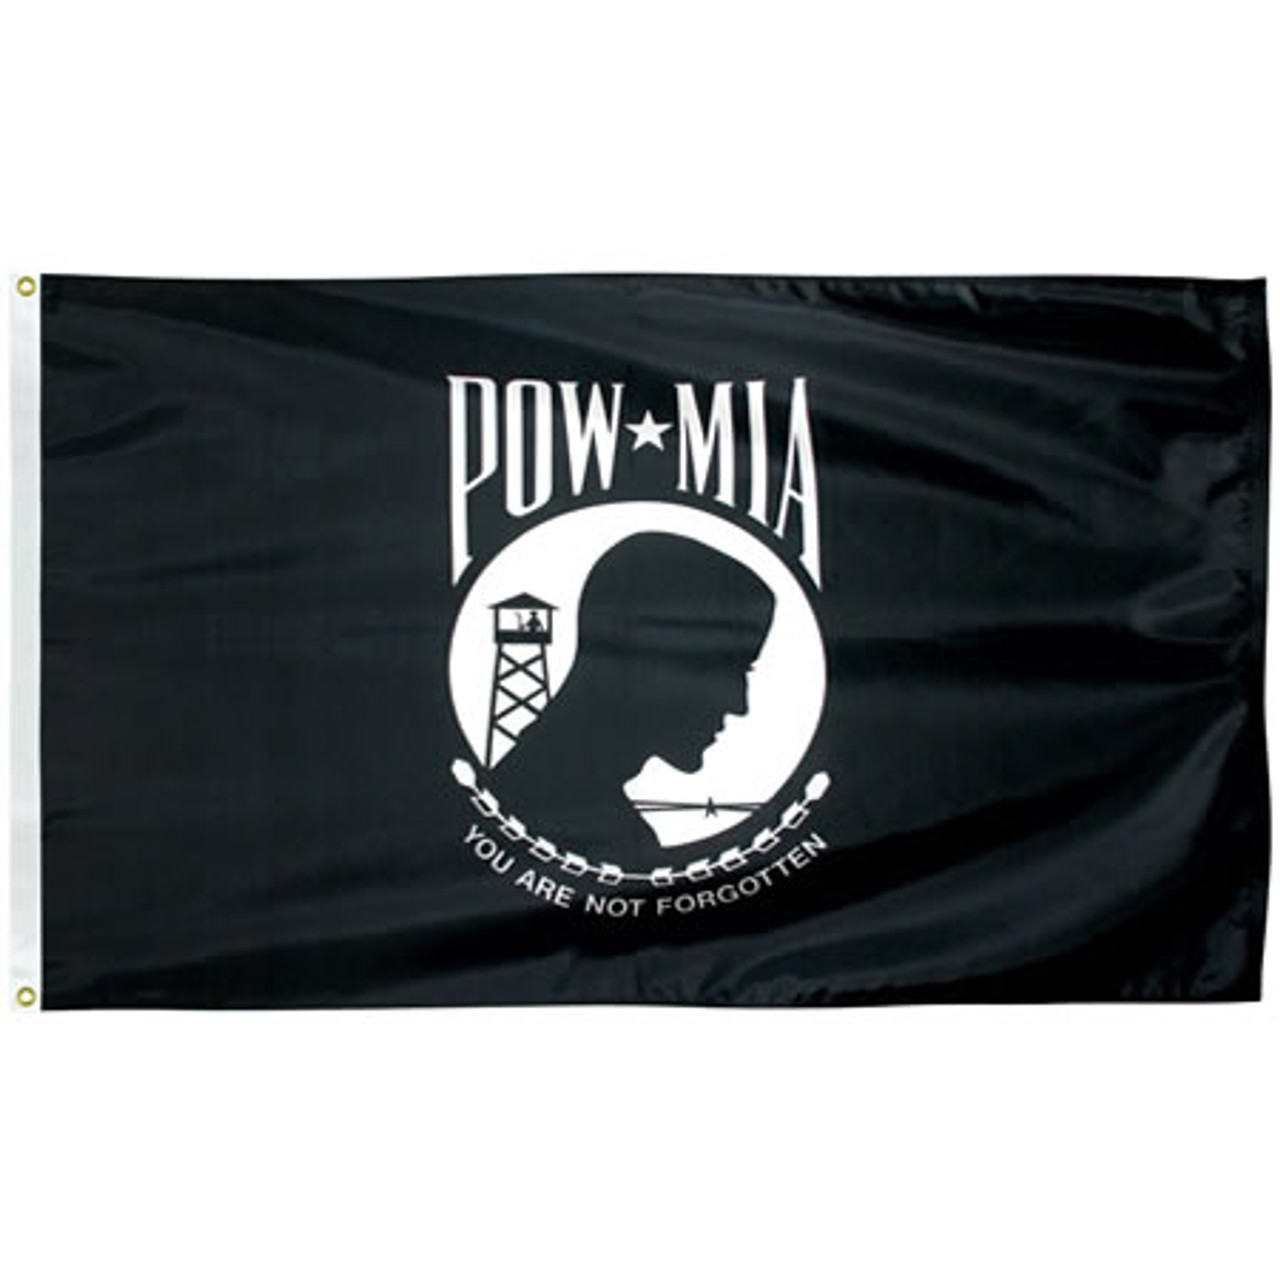 Single Faced Nylon POW-MIA Flags